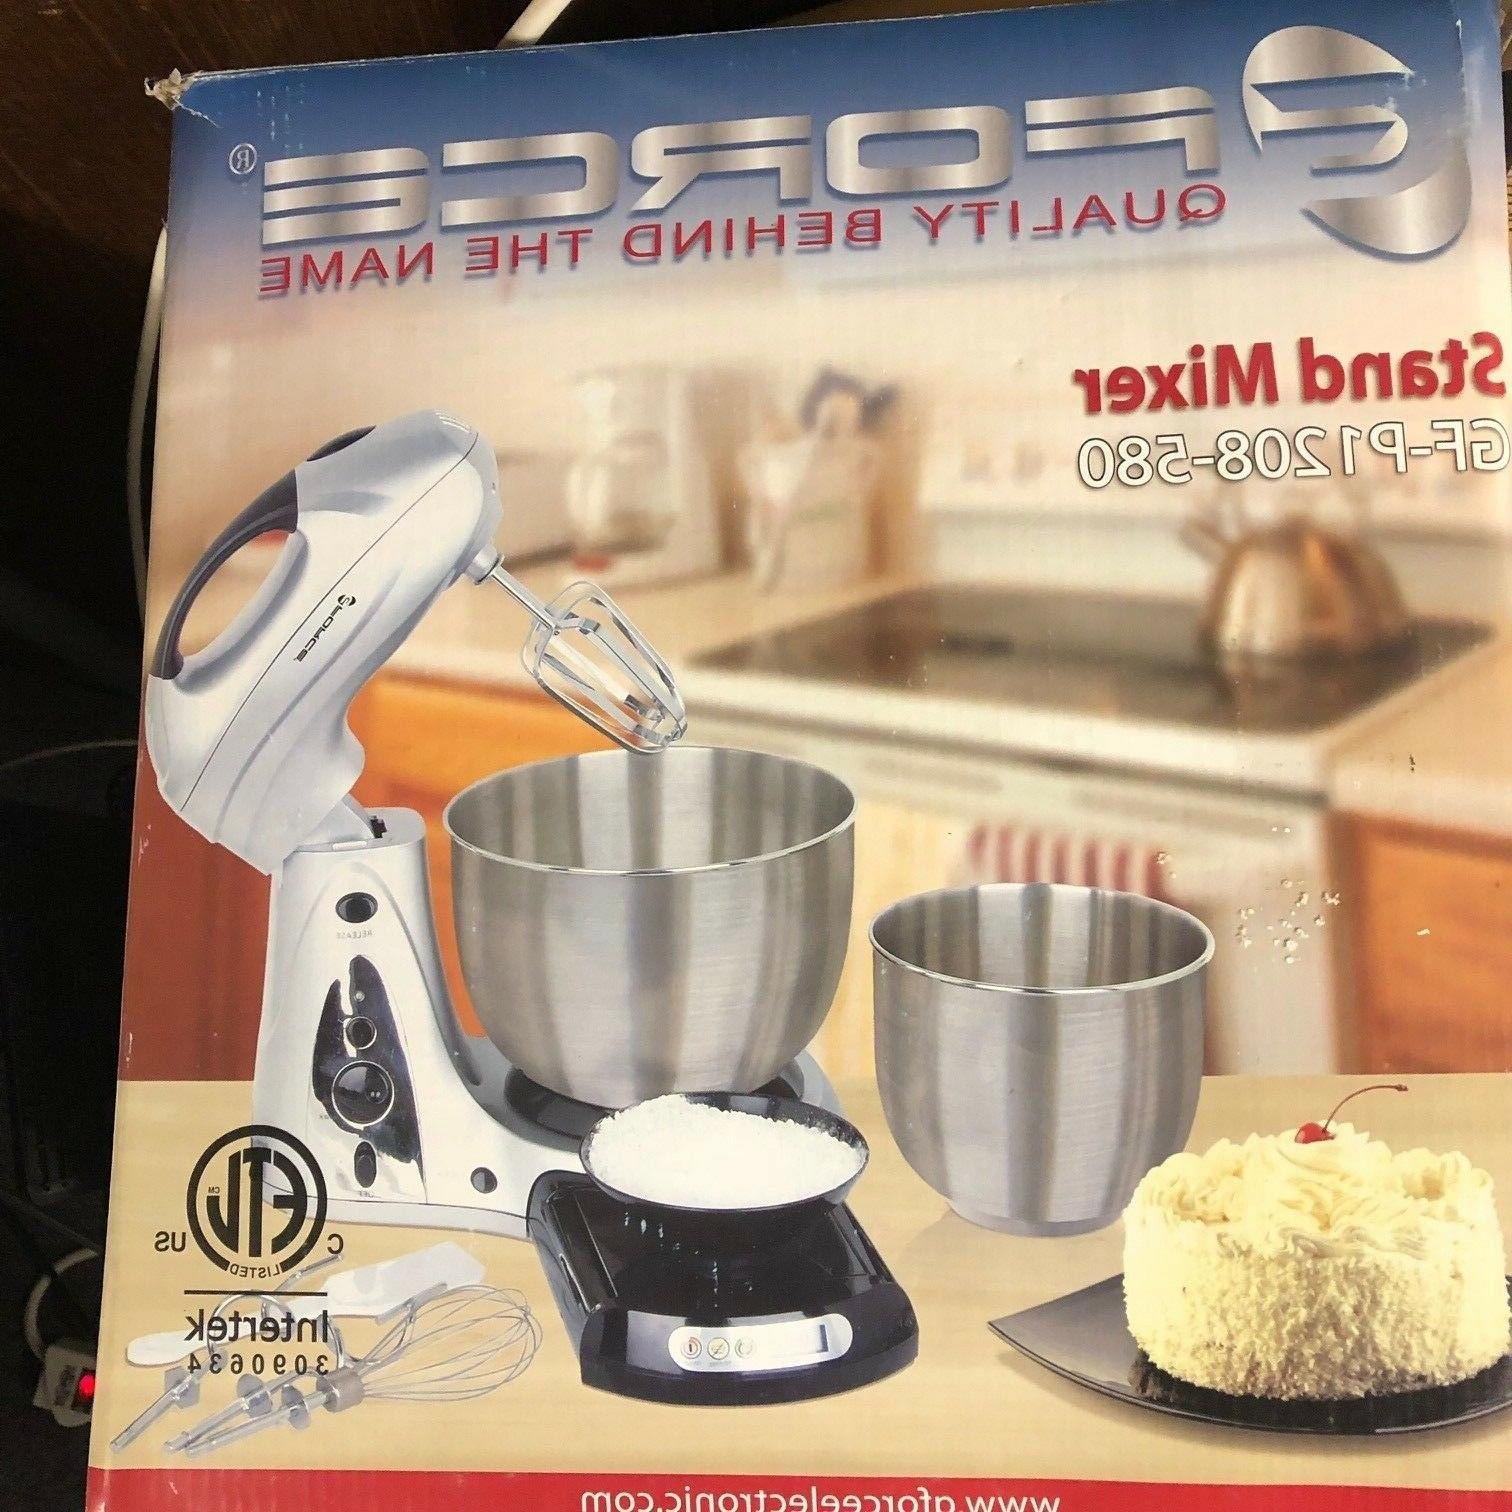 stand mixer with bowls and scale